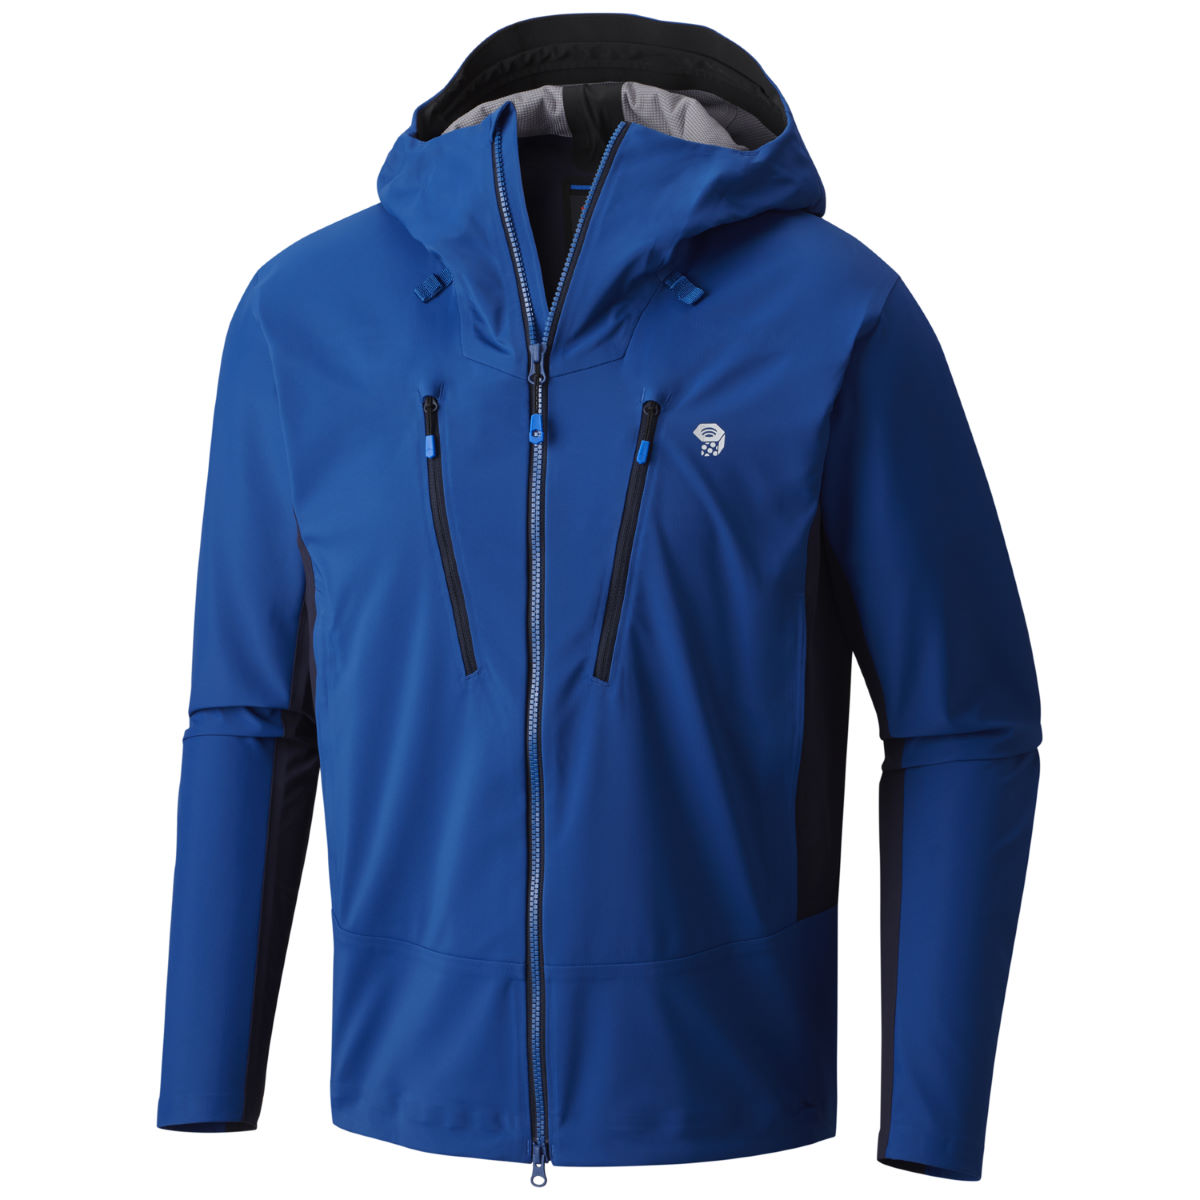 Mountain Hardwear Mountain Hardwear Touren™ Hooded Jacket   Jackets